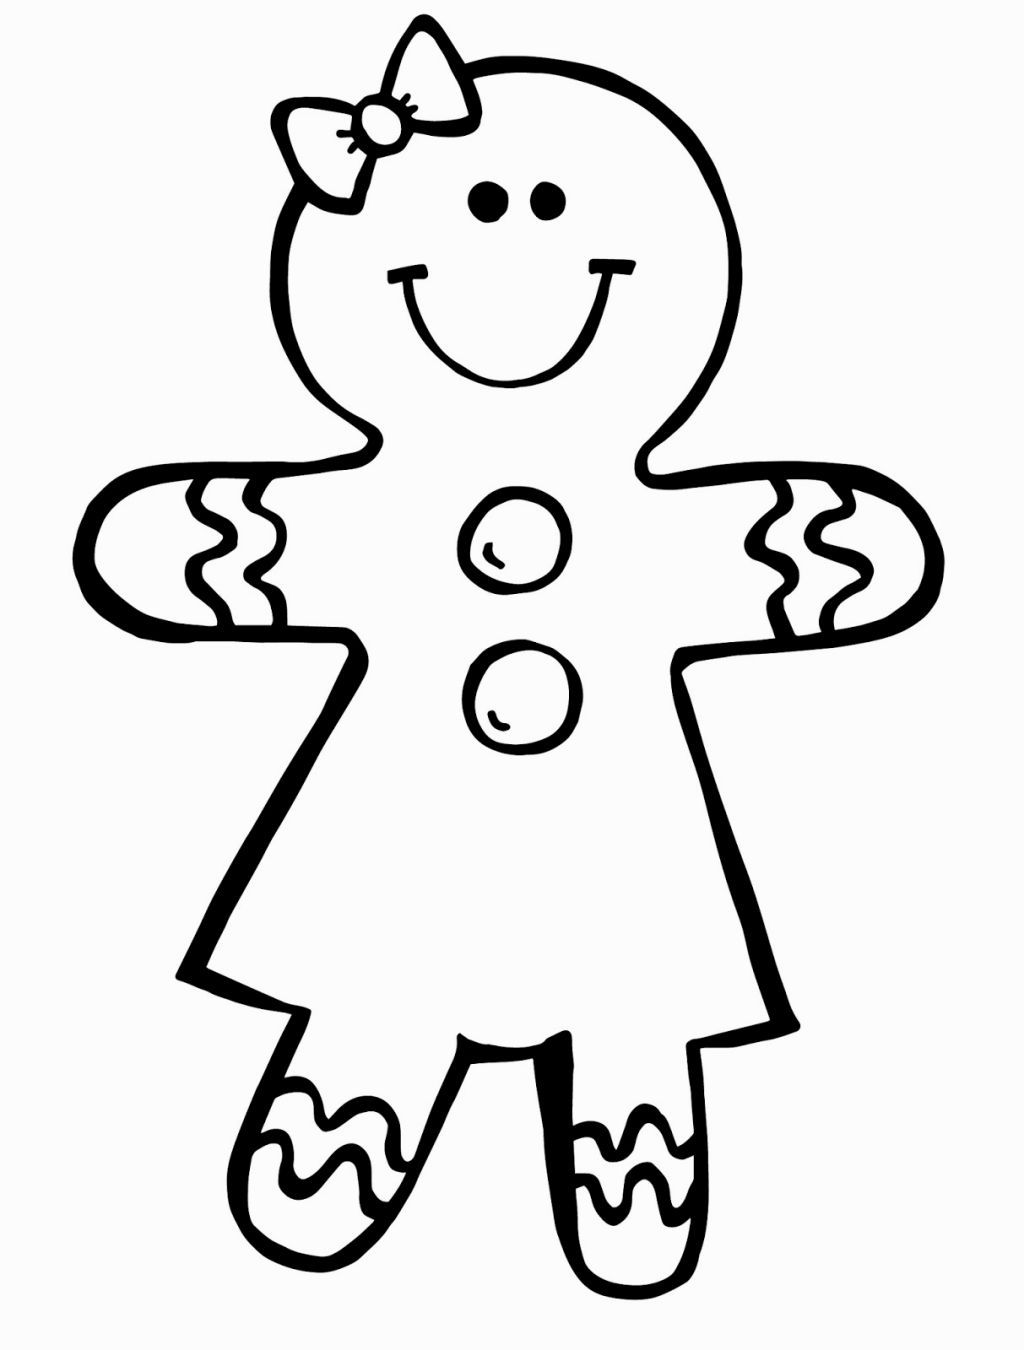 gingerbread girl coloring pages gingerbread man template gingerbread crafts gingerbread man activities christmas